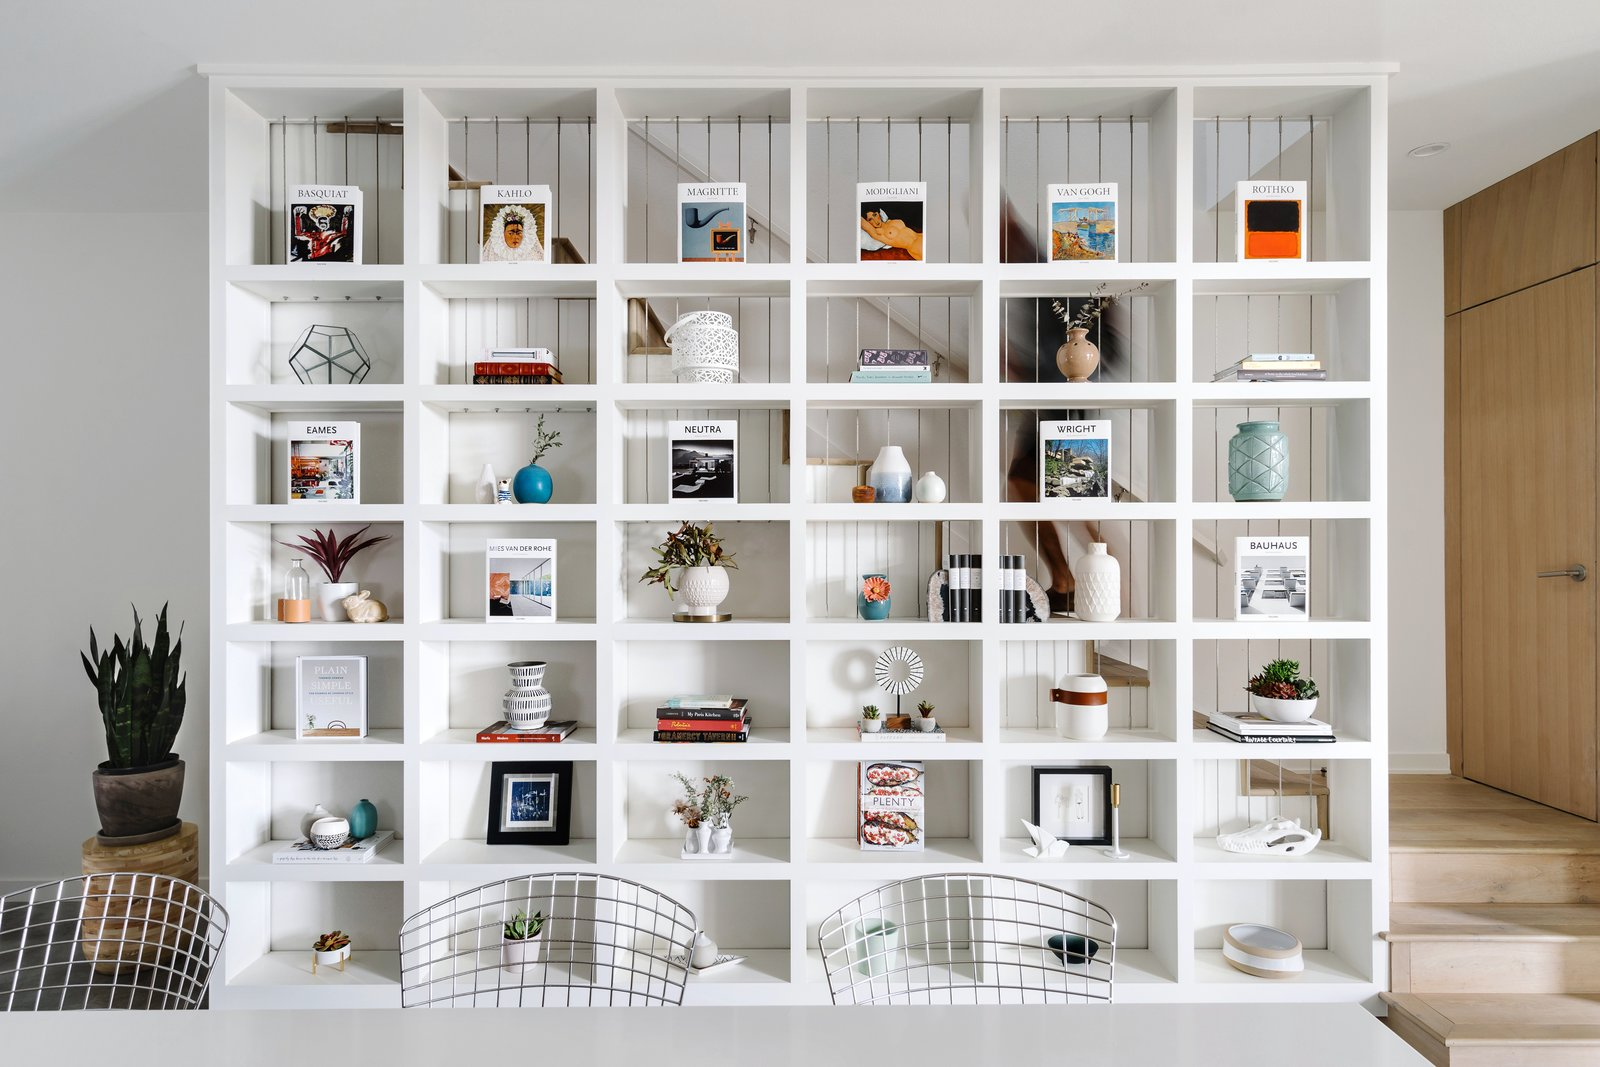 The large built-in shelving unit acts as a divider between the dining space and the staircase. Tagged: Storage Room and Shelves Storage Type. St. Barts-Inspired Accents Create Modern Tranquility in an Austin Tilley Row Home - Photo 3 of 7